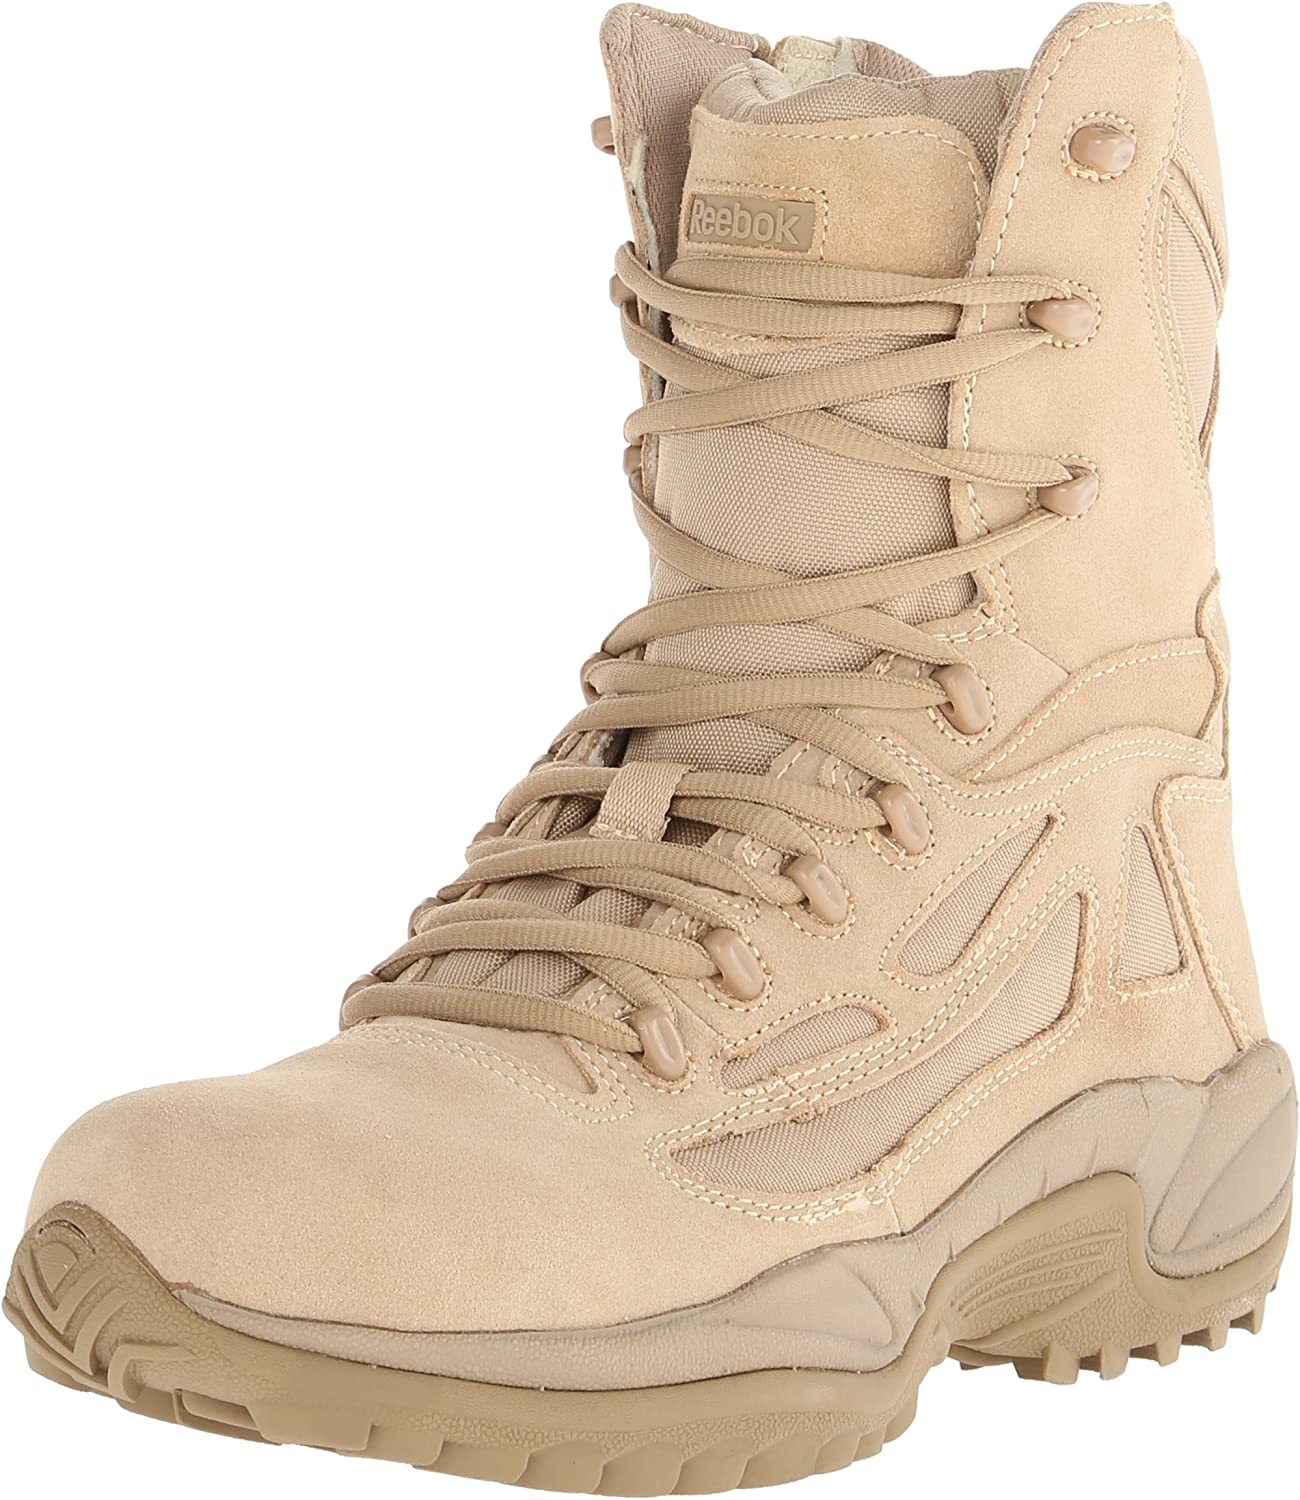 Reebok Military Rapid Response 8in Side Zip Military bottes